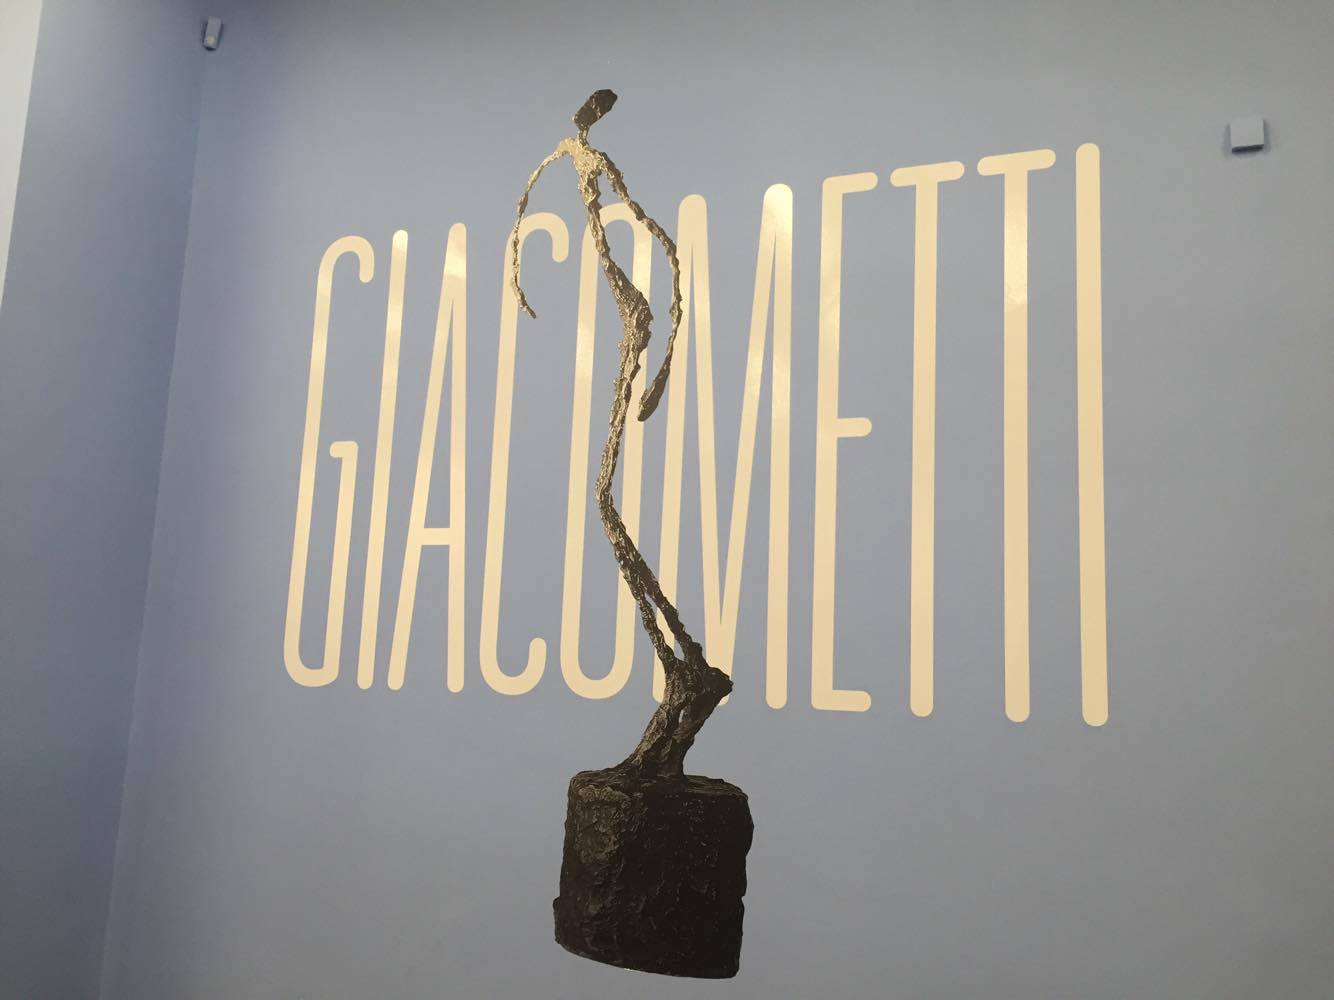 Alberto Giacometti at Tate Modern: 'I paint and sculpt to get a grip on reality'